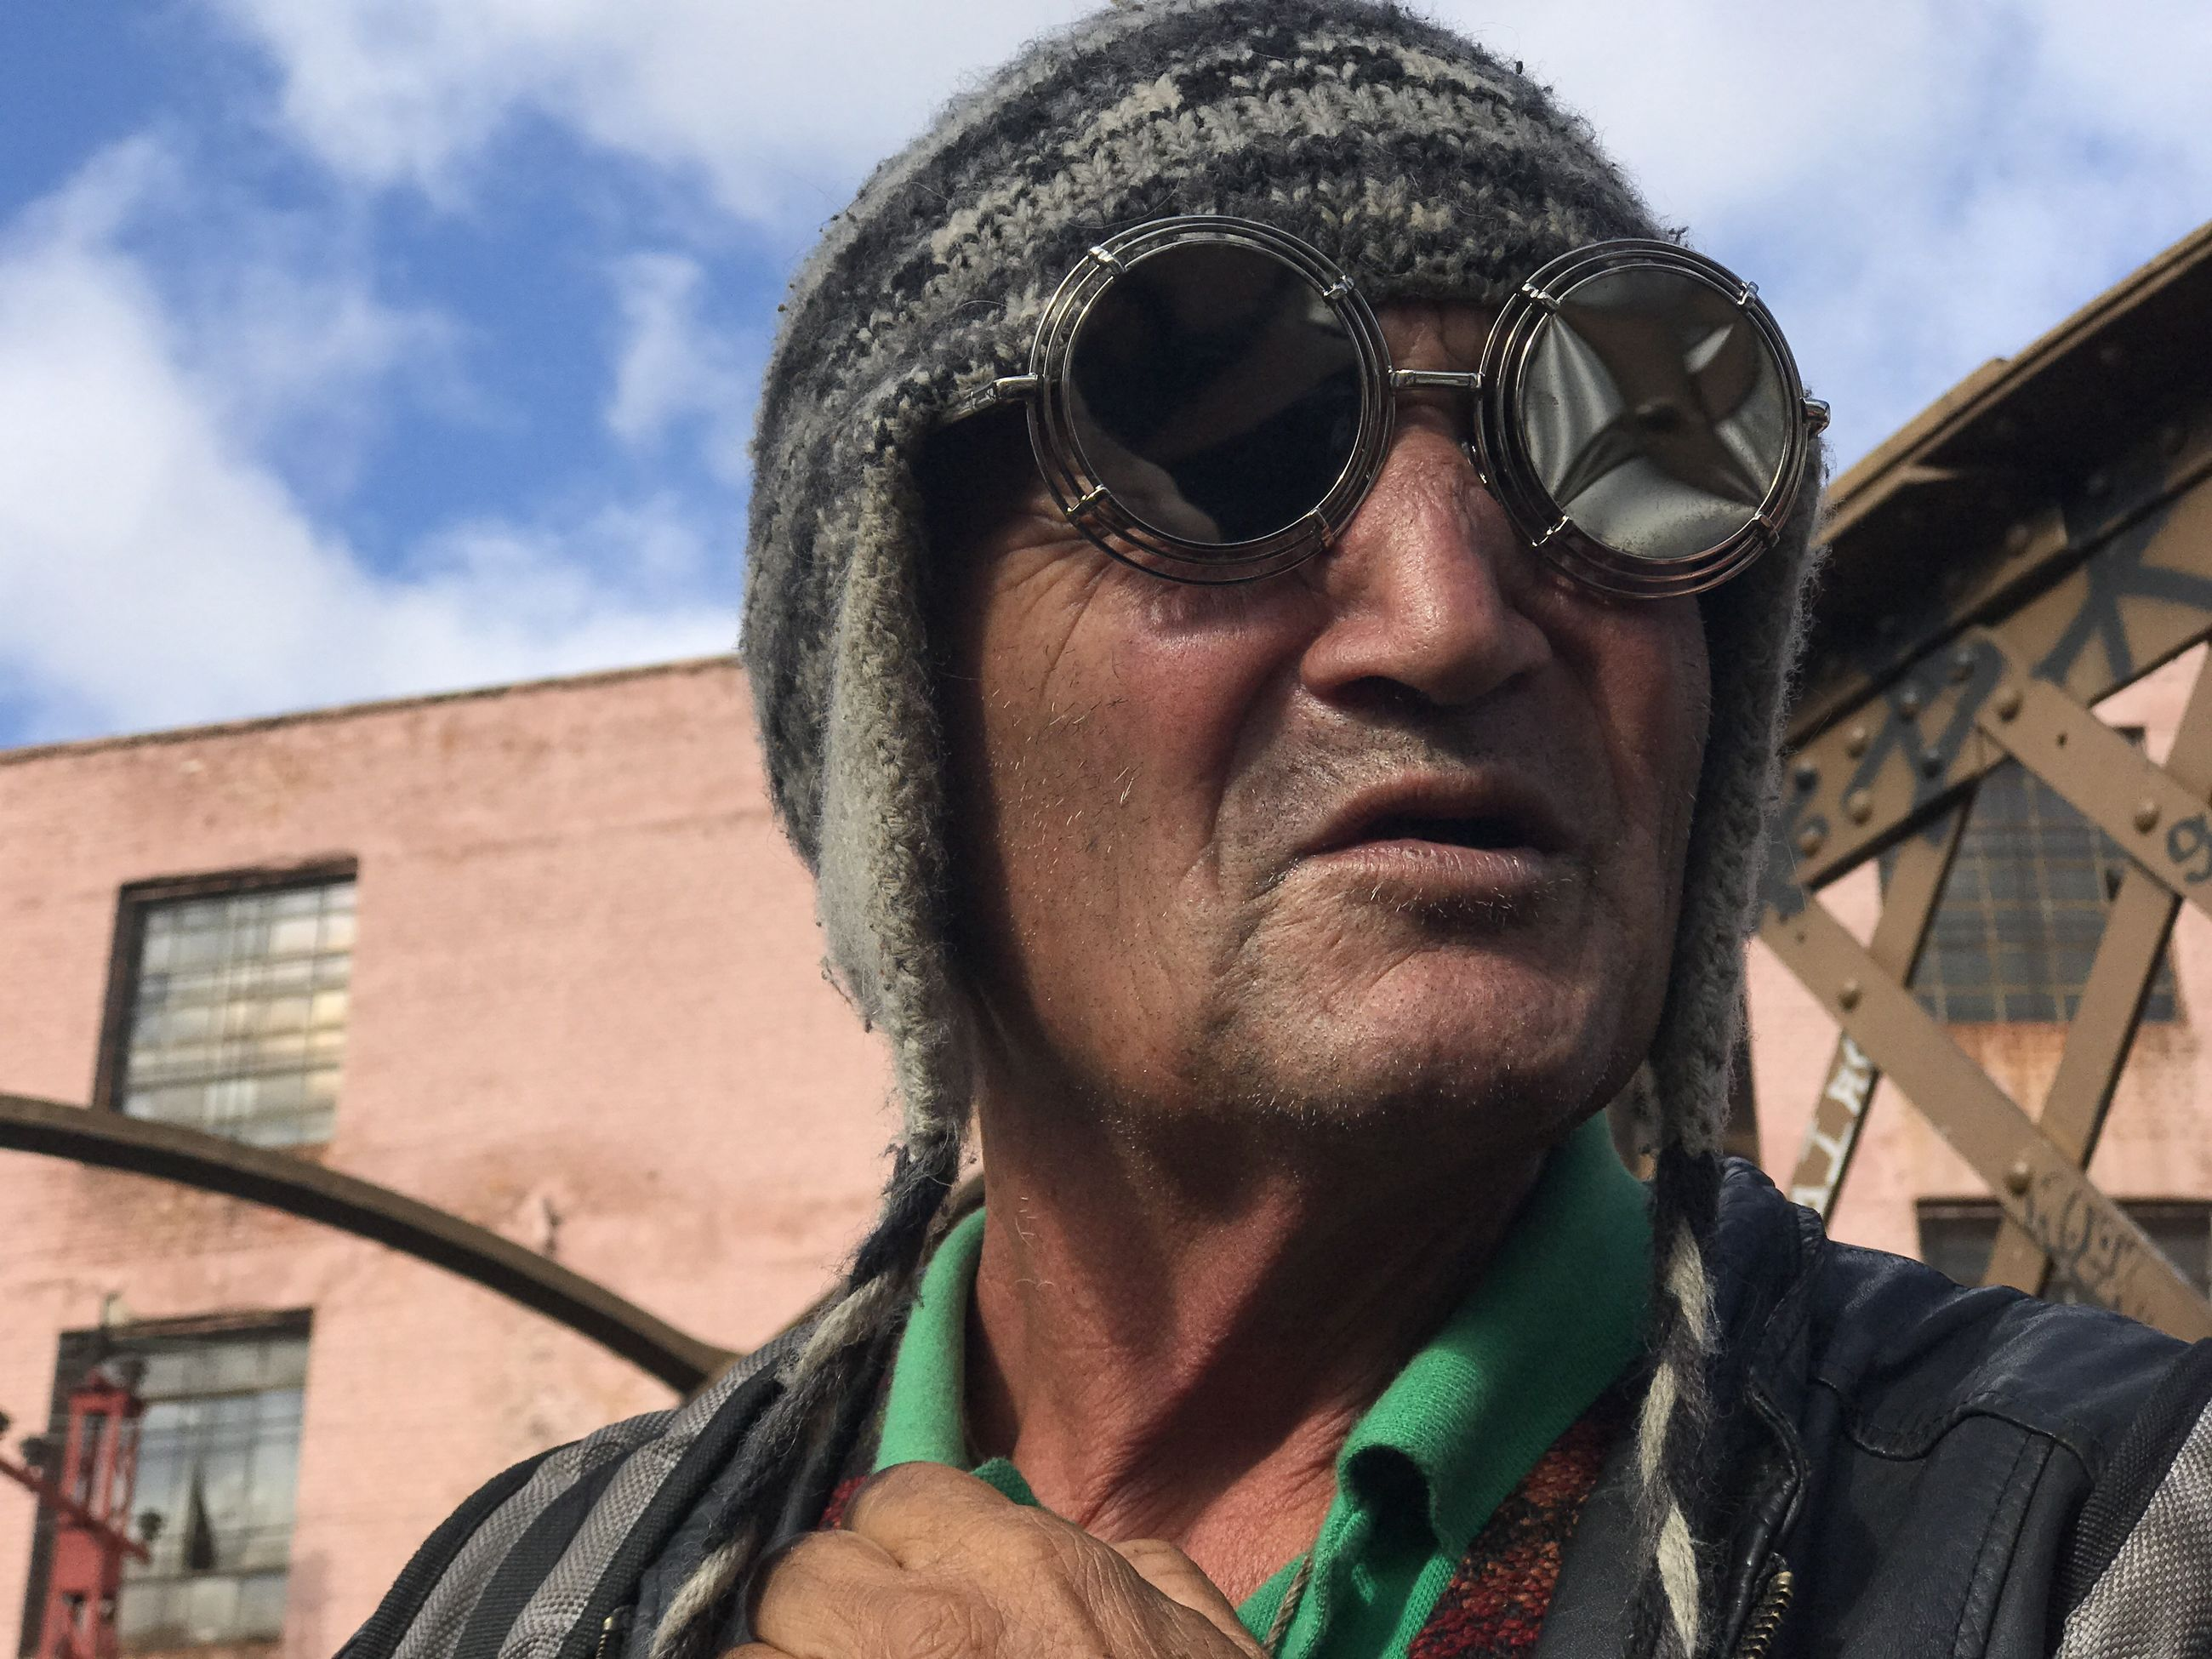 real people, one person, mid adult men, headshot, mid adult, portrait, outdoors, mature men, front view, day, sunglasses, low angle view, looking at camera, jacket, built structure, building exterior, lifestyles, sky, mature adult, cloud - sky, architecture, smiling, close-up, young adult, warm clothing, people